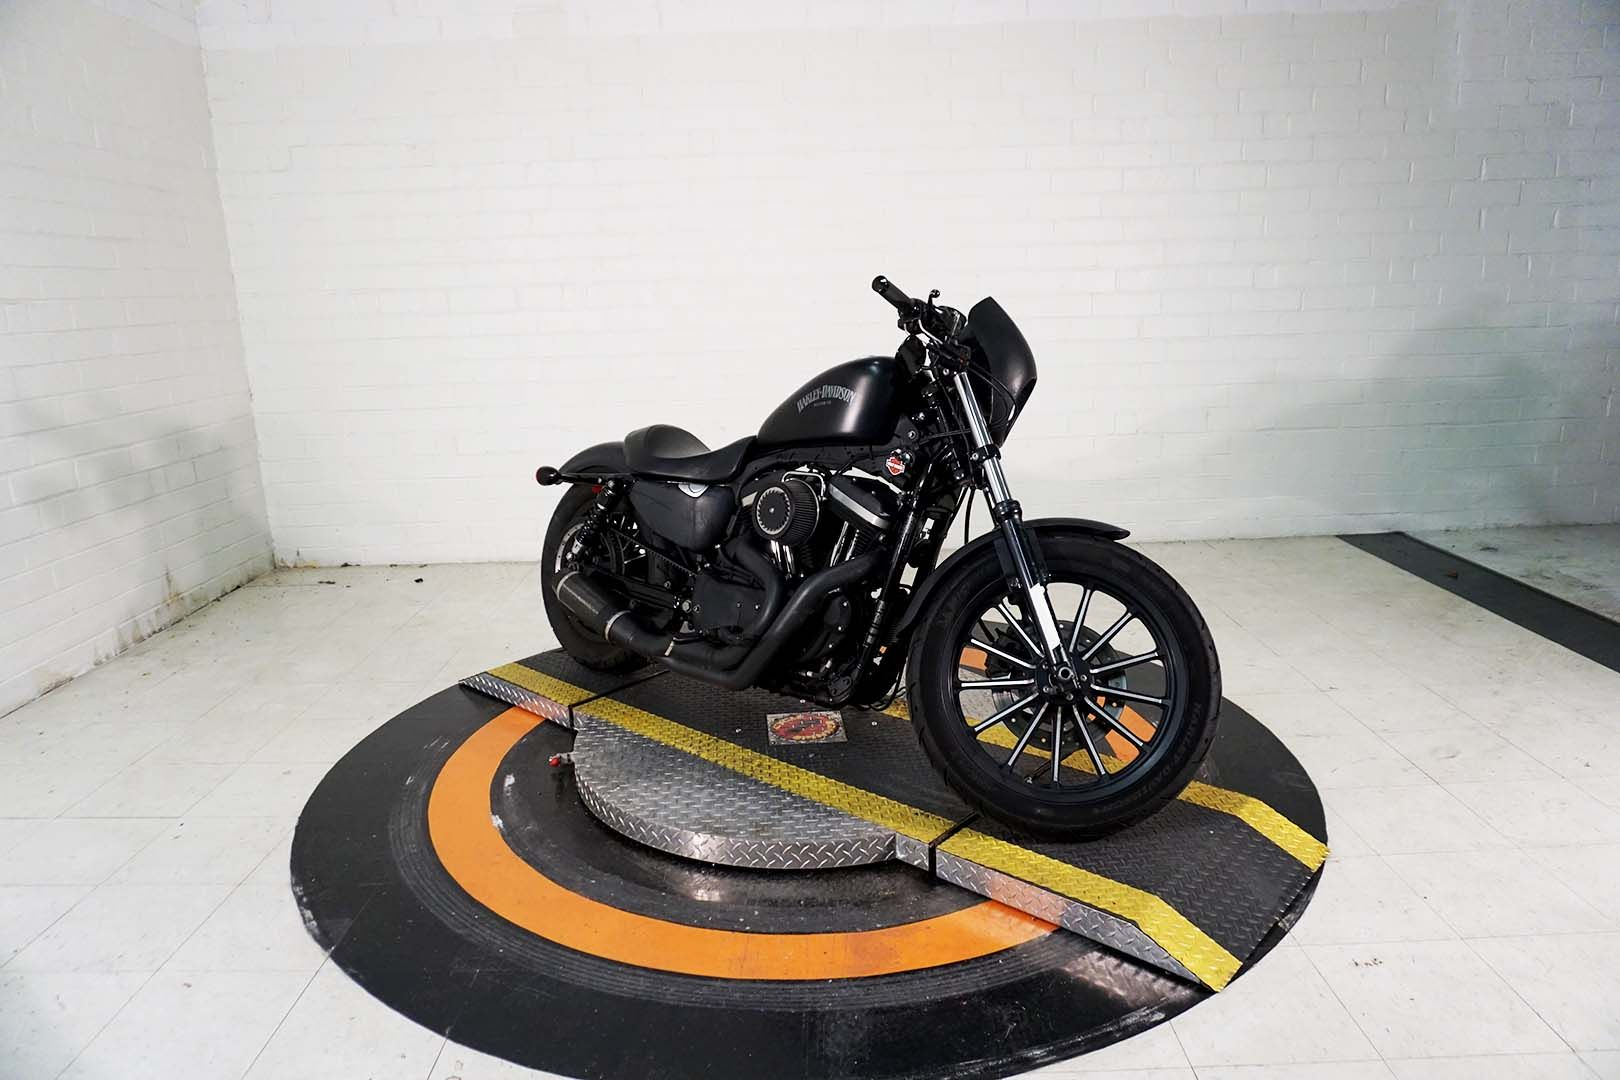 Pre-Owned 2013 Harley-Davidson Iron 883